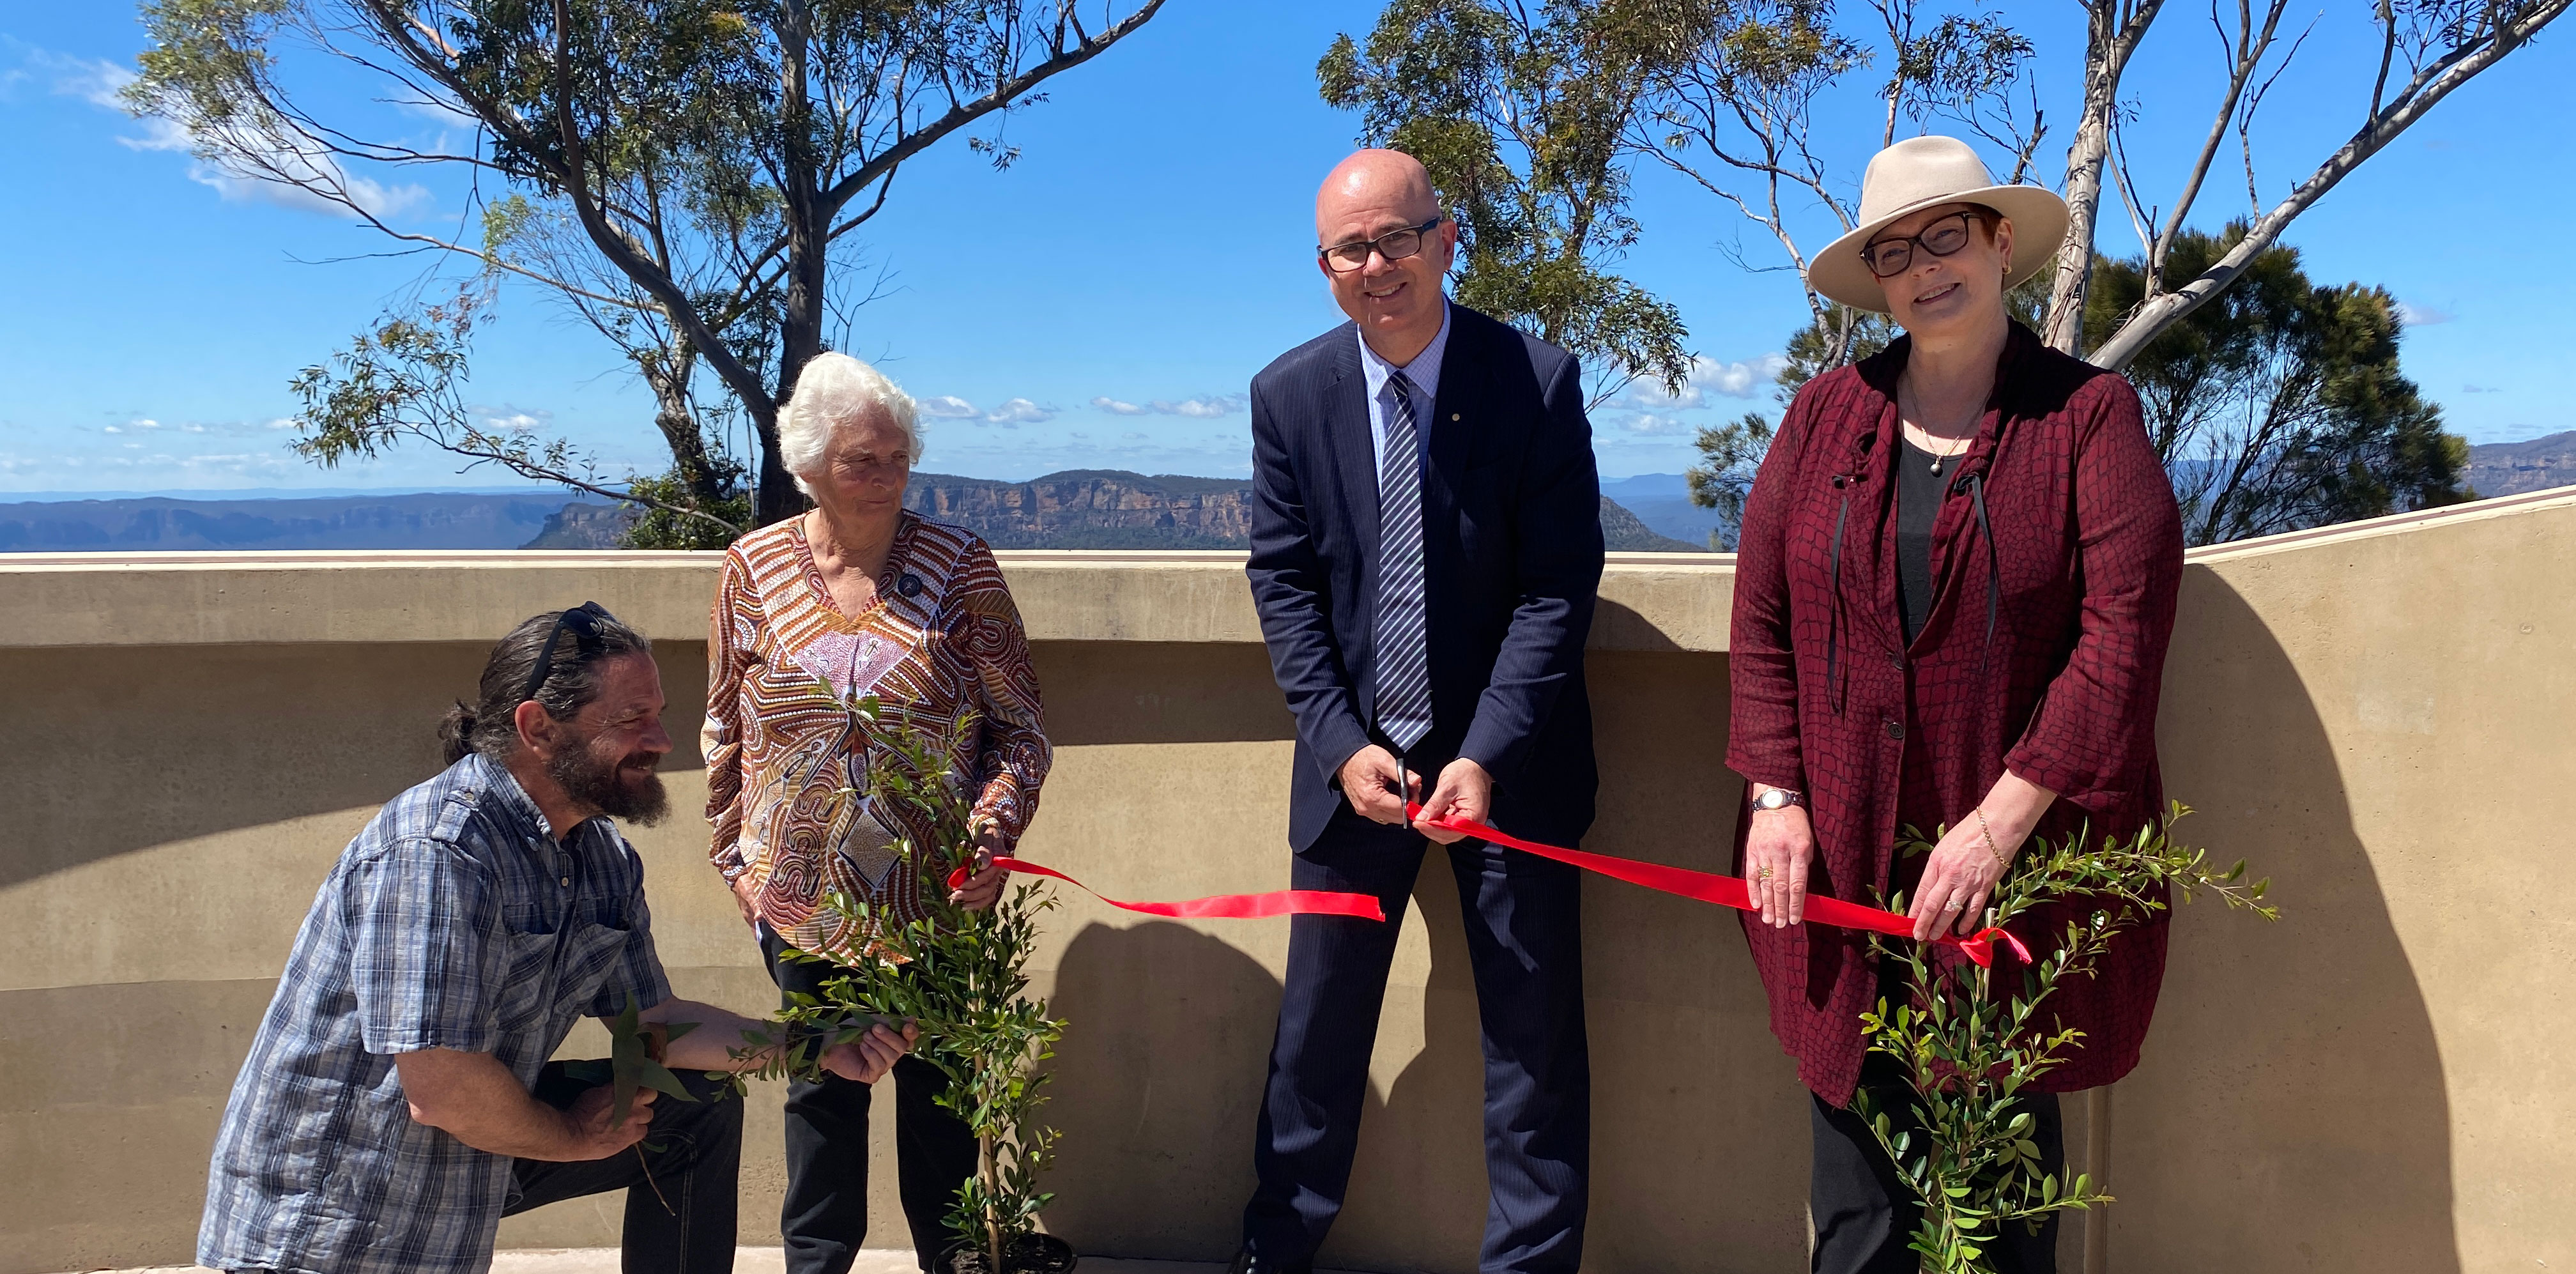 Dharug man Chris Tobin, Gundungurra Elder Aunty Sharyn Halls, Mayor Mark Greenhill and Senator Marise Payne official open the new Gathering Place at Echo Point.